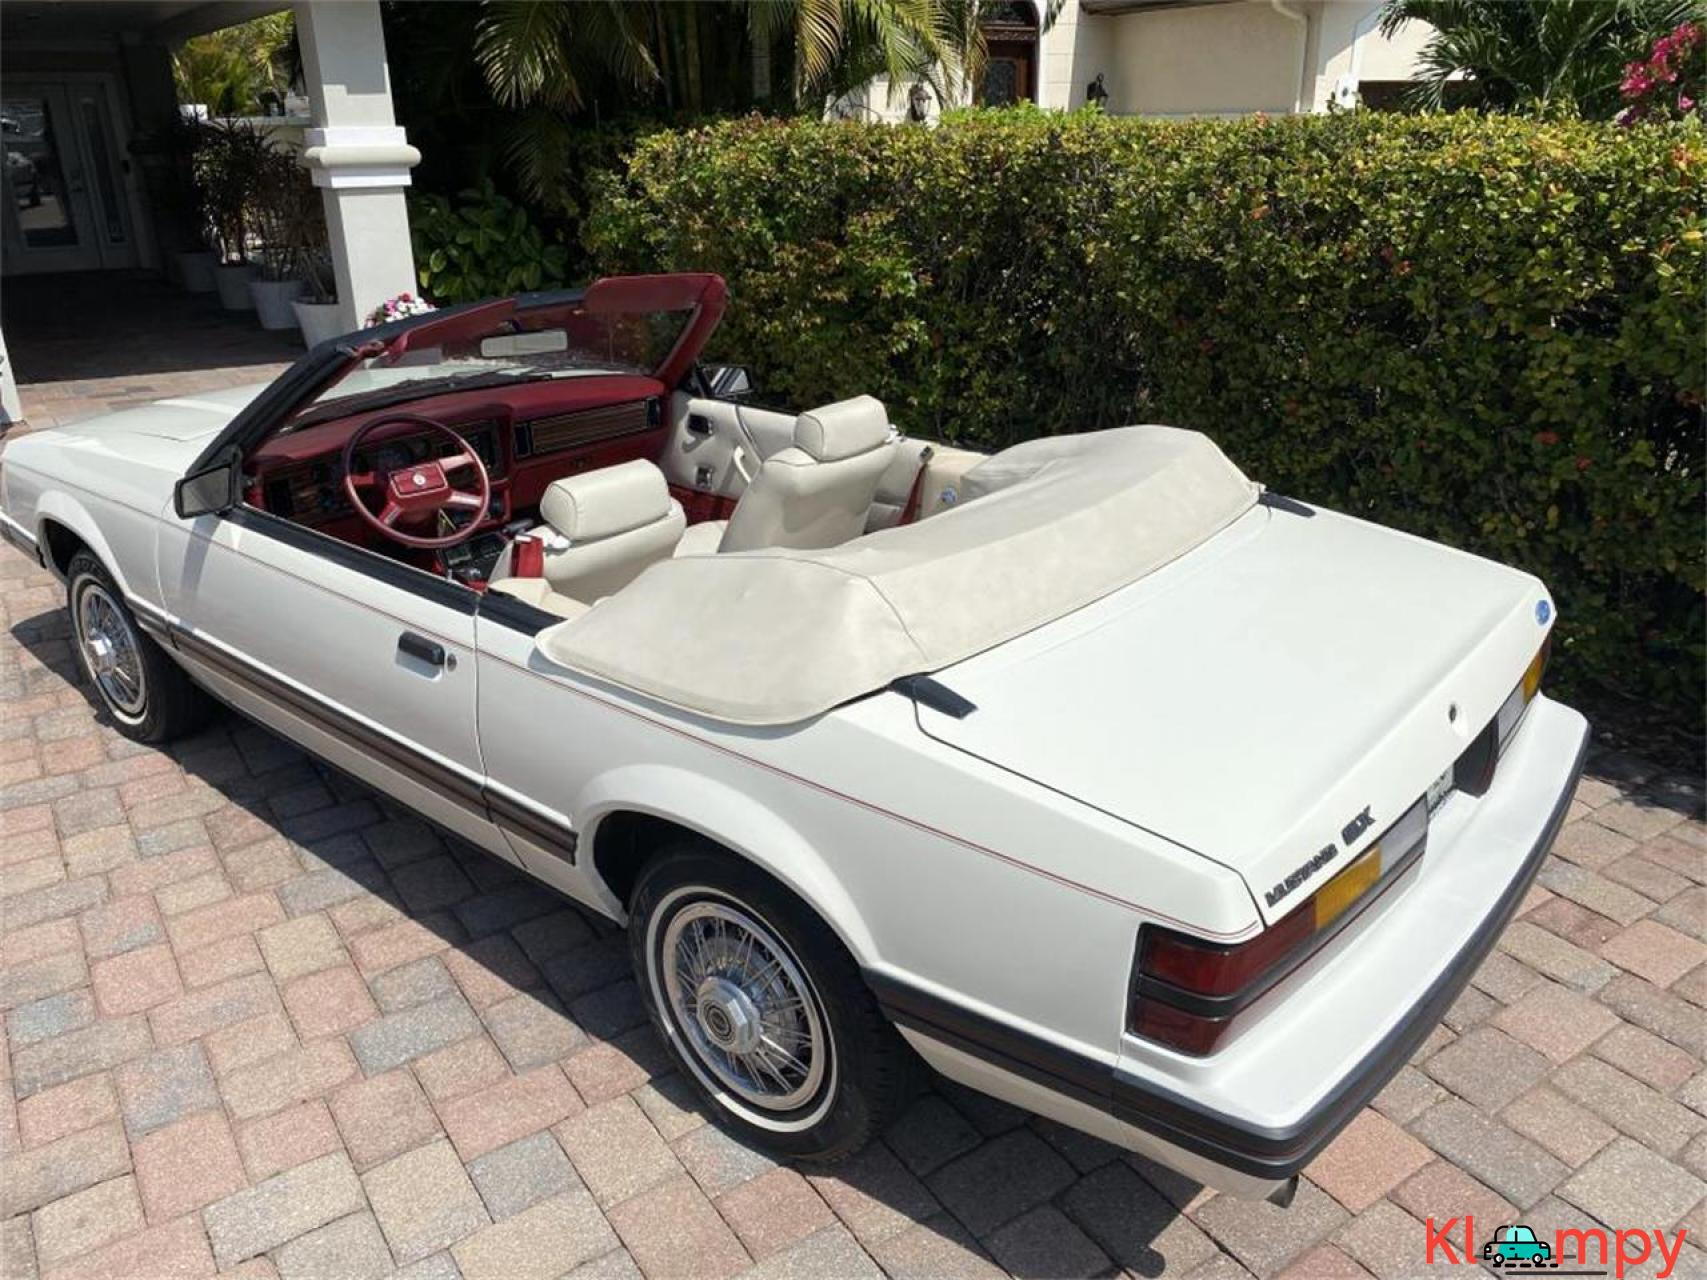 1983 Ford Mustang 3.8 LITRE V6 AUTO - 20/20